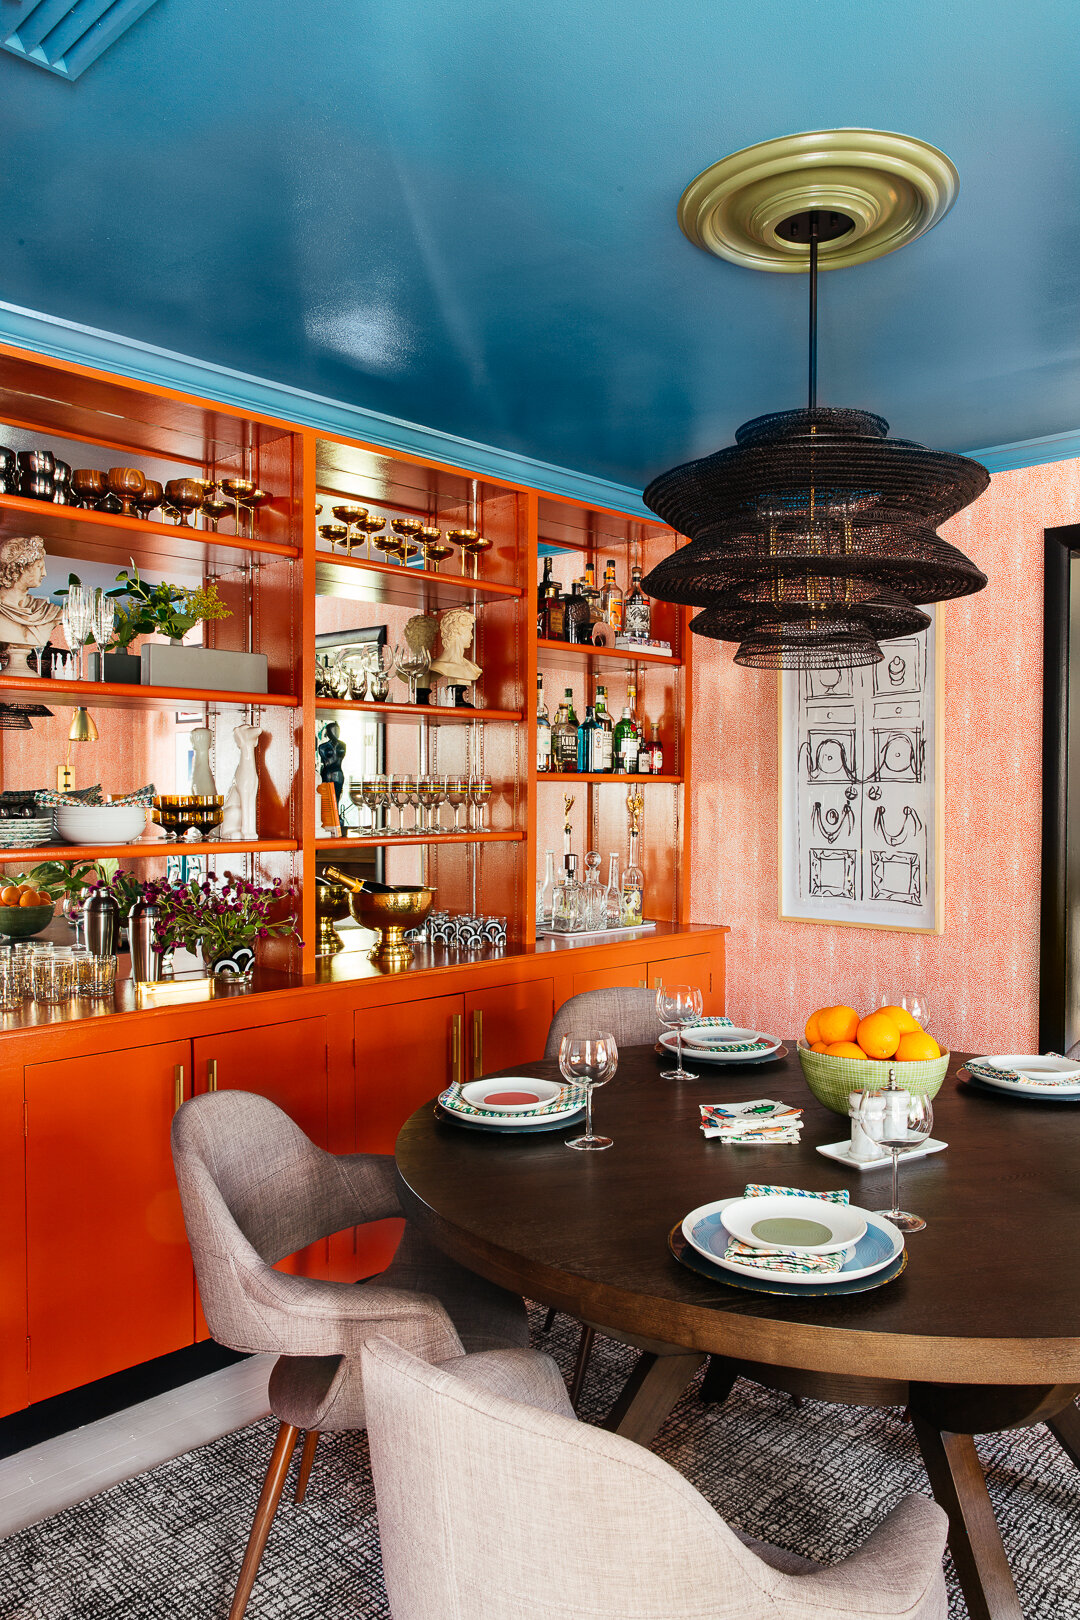 sm ORC dinig room blue ceiling green medallion orange built in bookshelves by TheRathProject.jpg